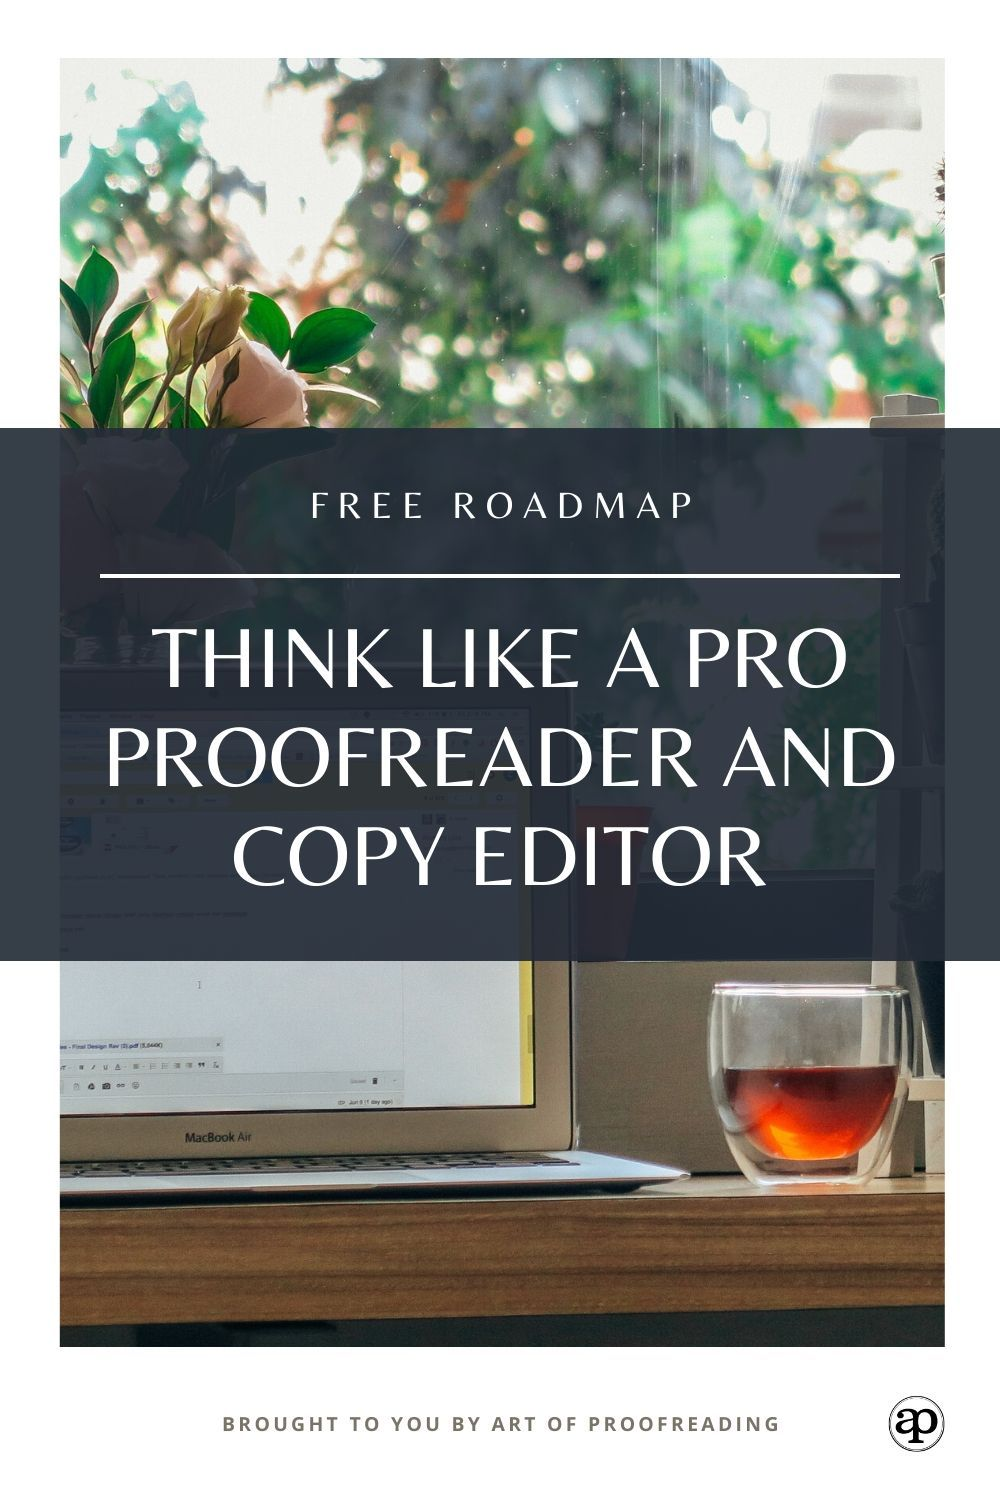 Get into the mindset of a pro proofreader and copy editor